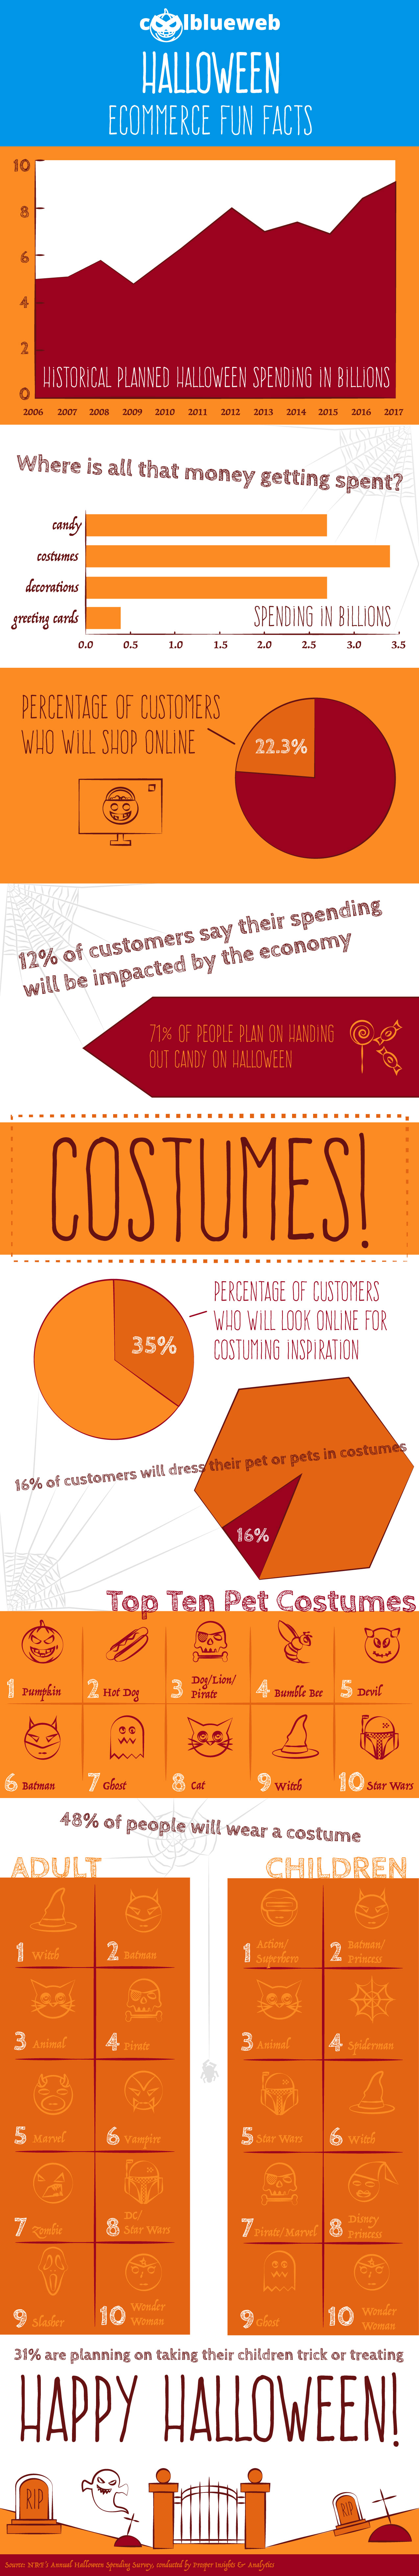 spooktacular halloween ecommerce facts [infographic] | coolblueweb